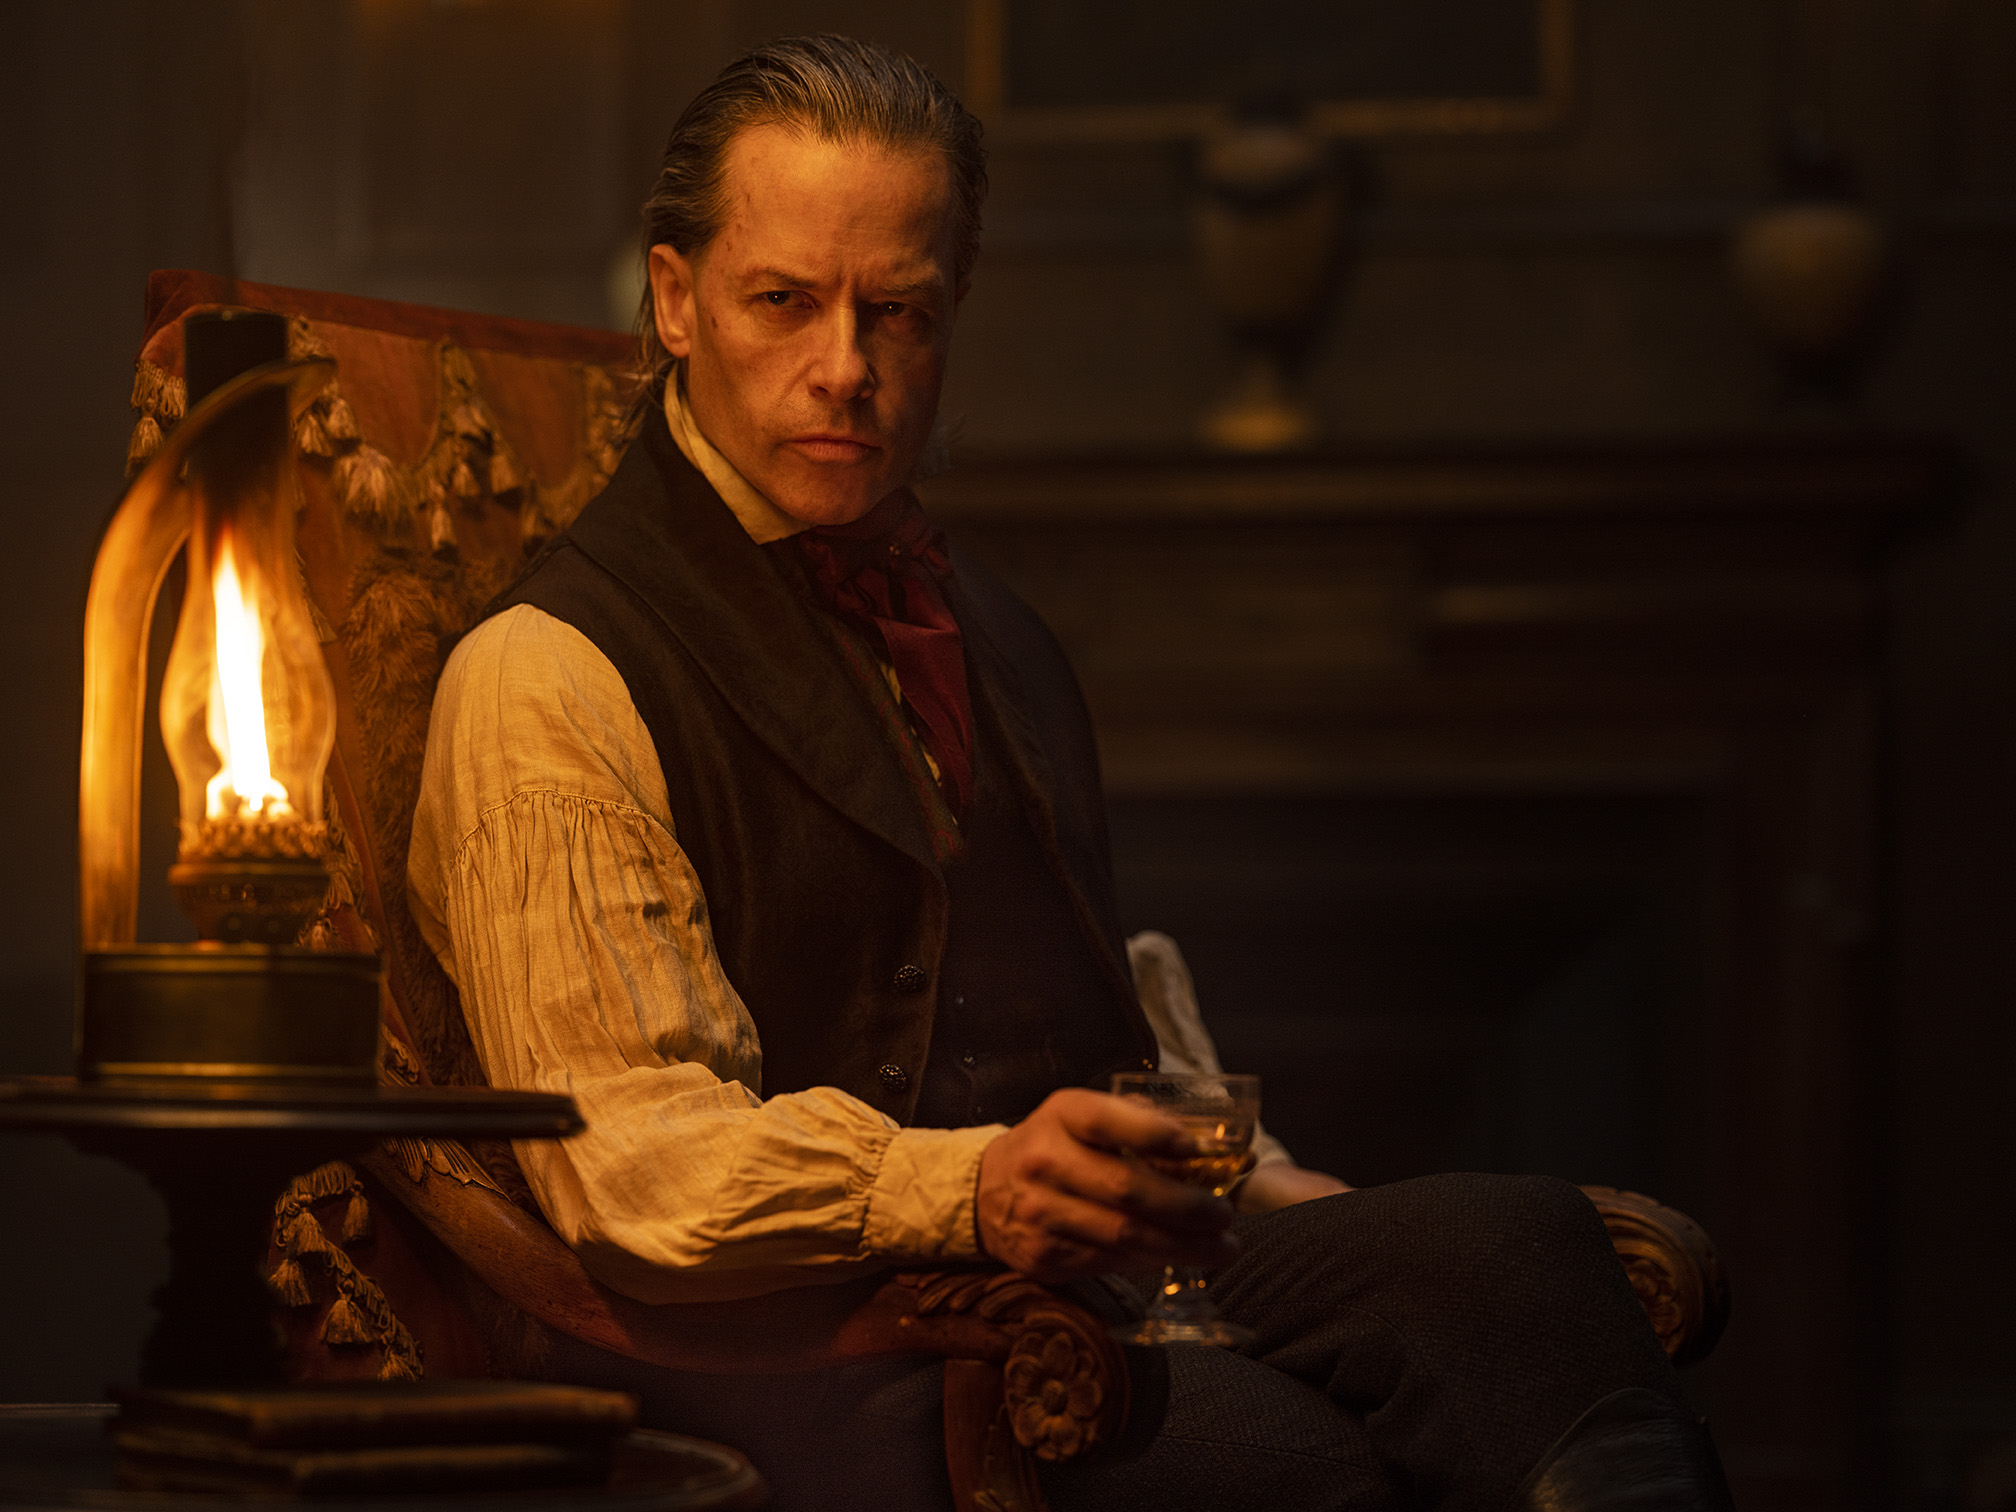 A Christmas Carol star Guy Pearce: 'My Scrooge has swagger!'